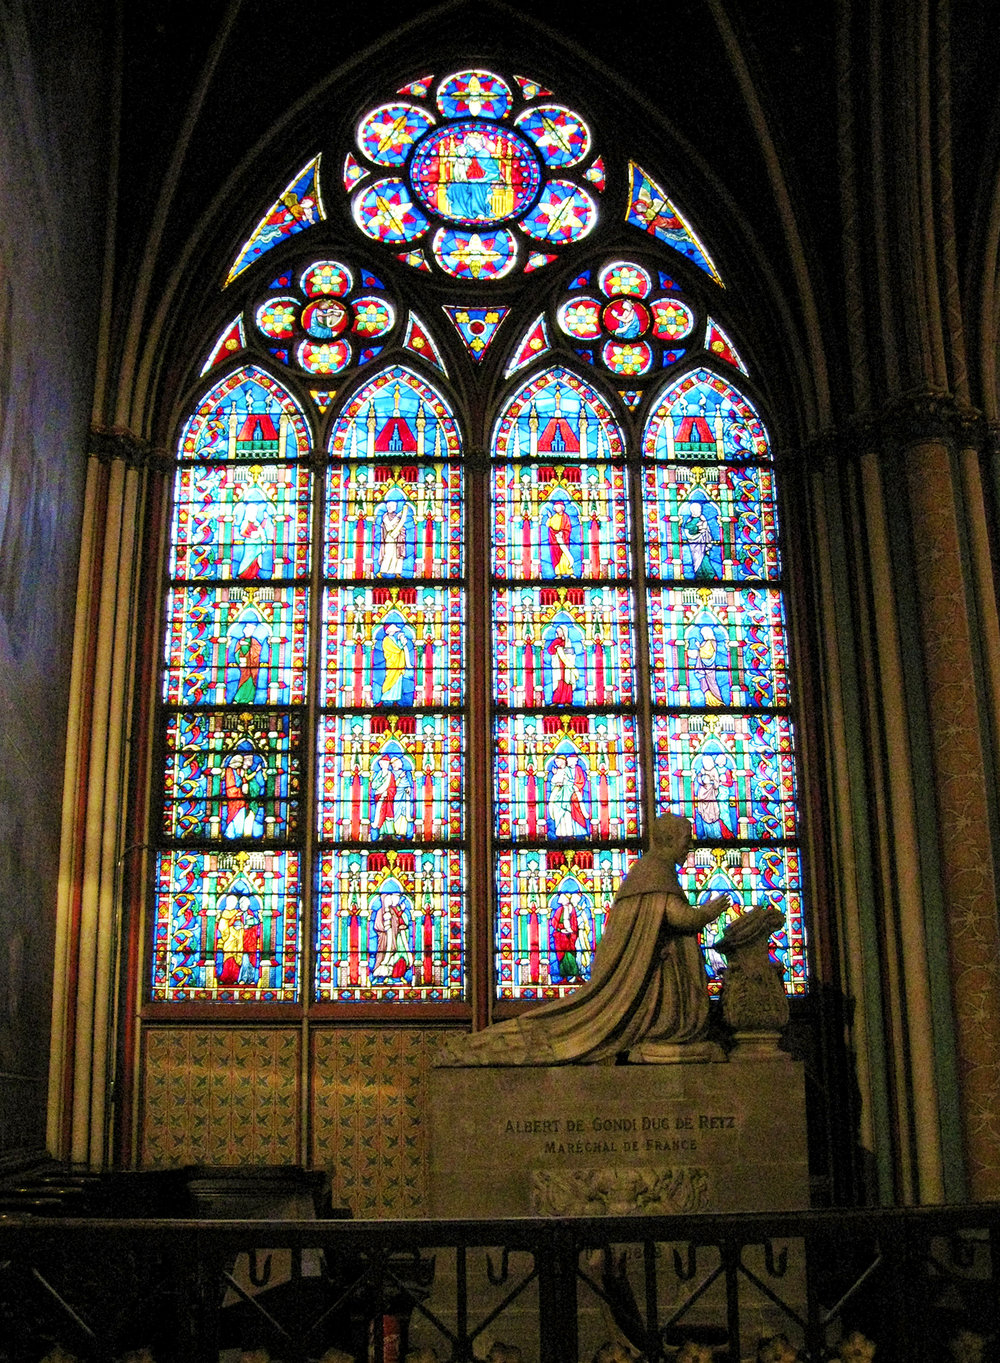 Stained glass in one of the lateral chapels